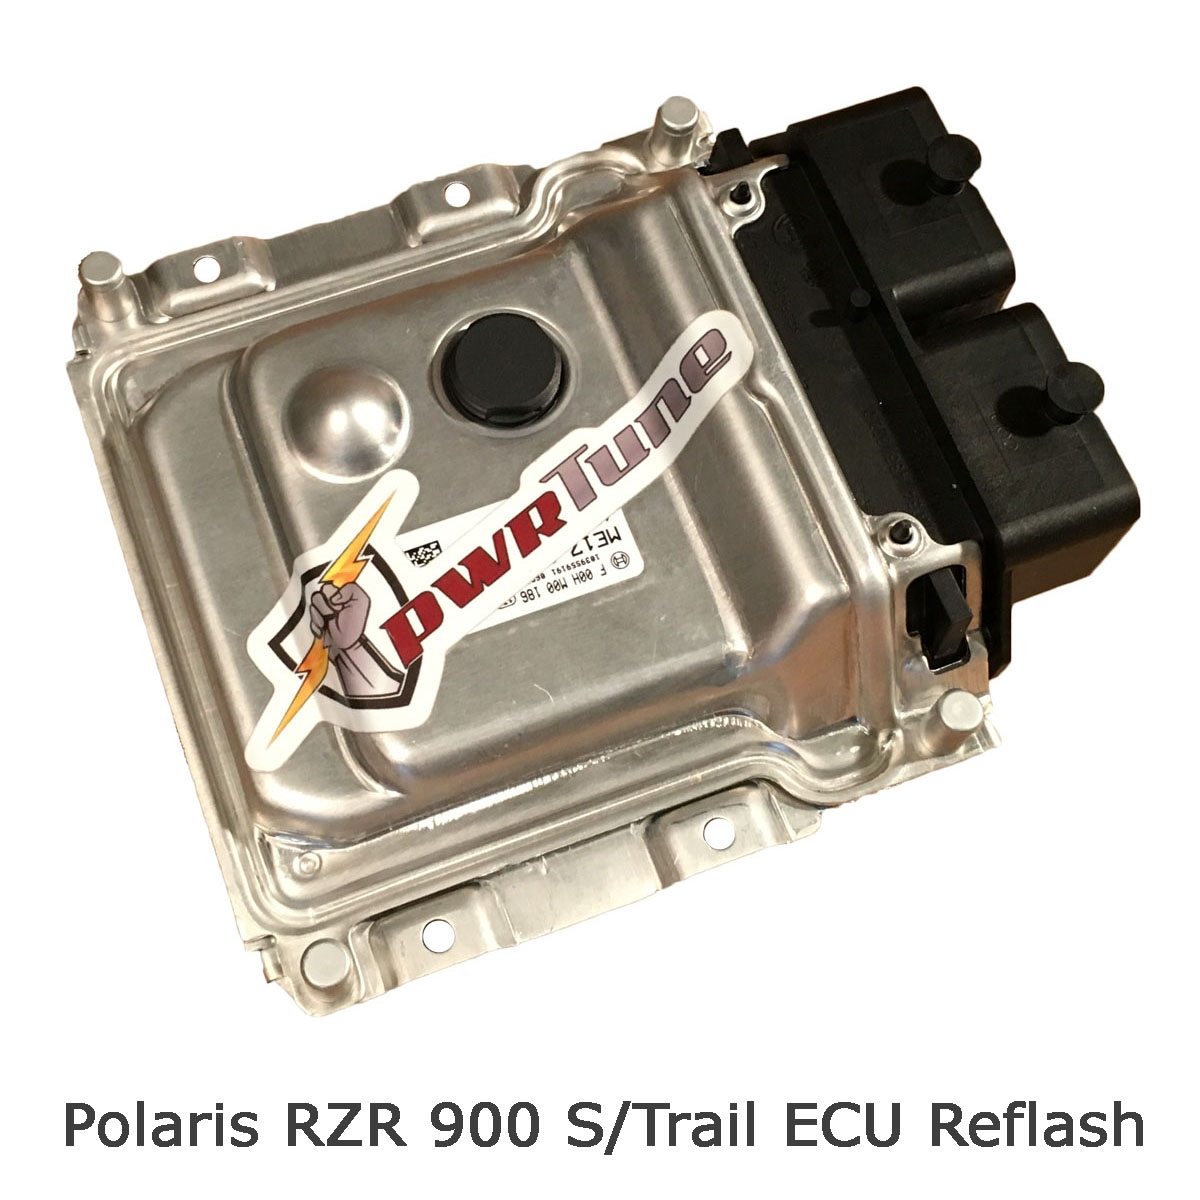 ed7aad8e04 pwrTune ECU Performance reflash tuning for Polaris RZR 900 S 900S trail.